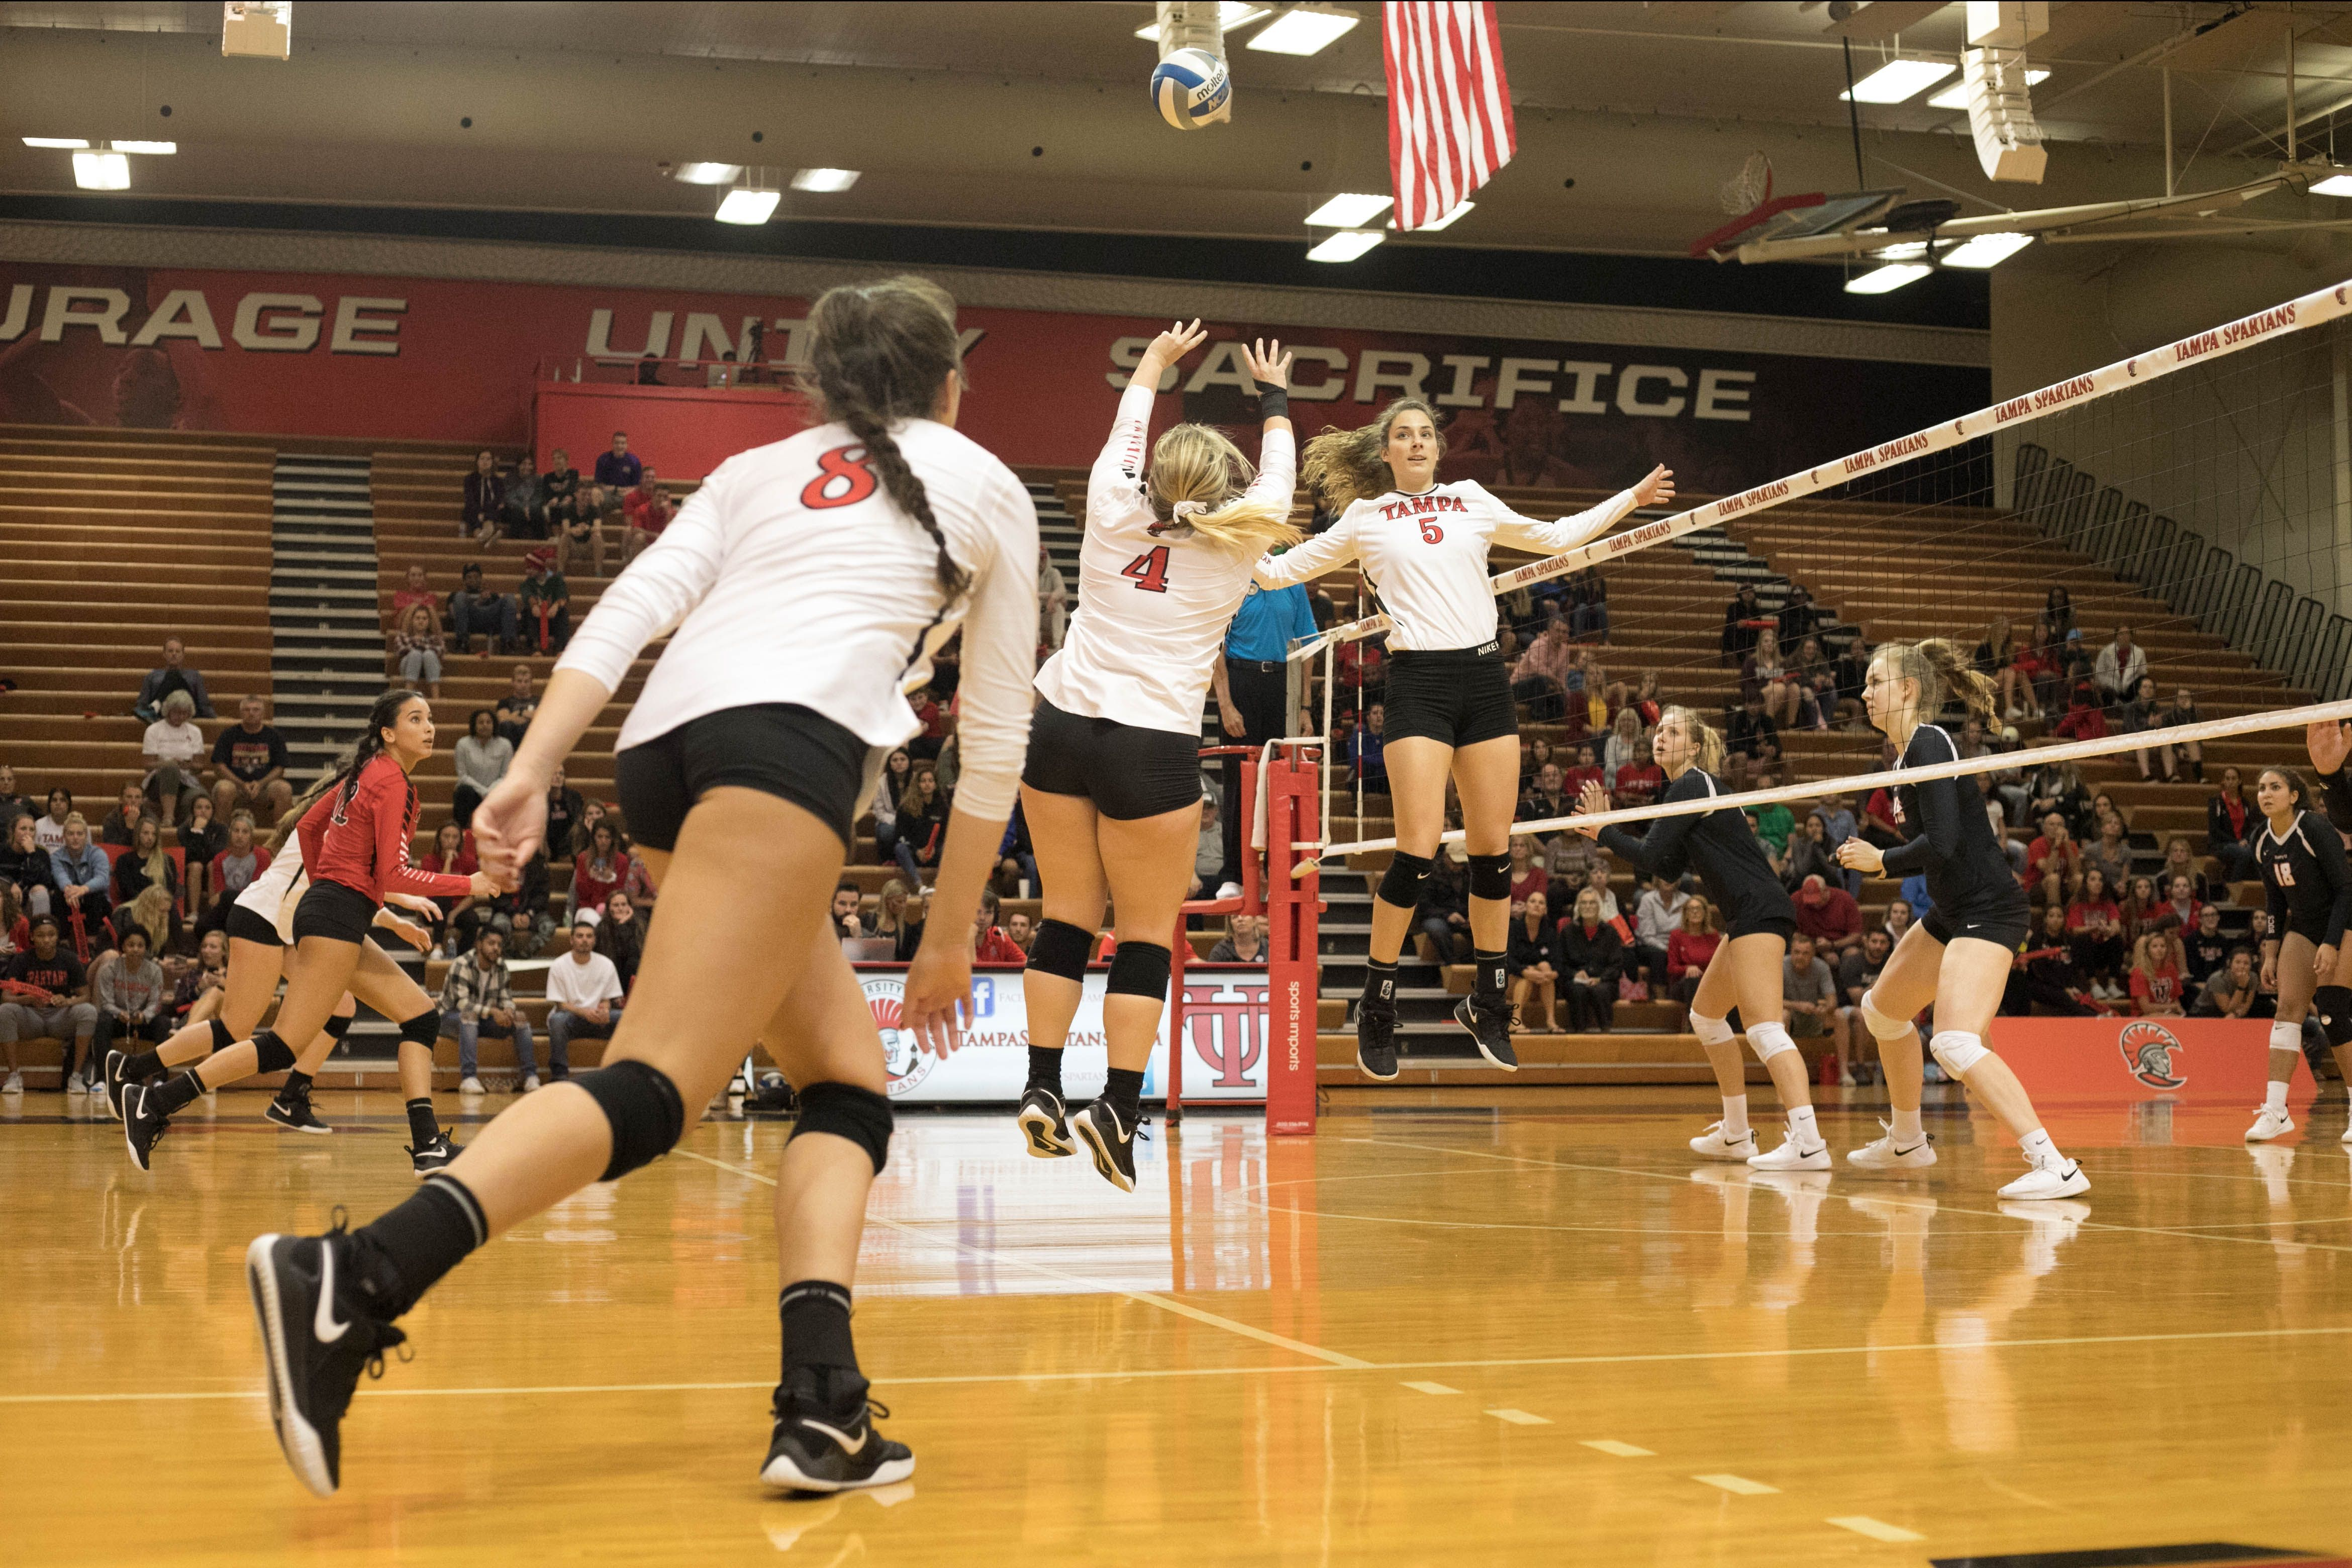 University Of Tampa Spartans Division Ii Athletics Women S Volleyball Women Volleyball University Of Tampa Volleyball